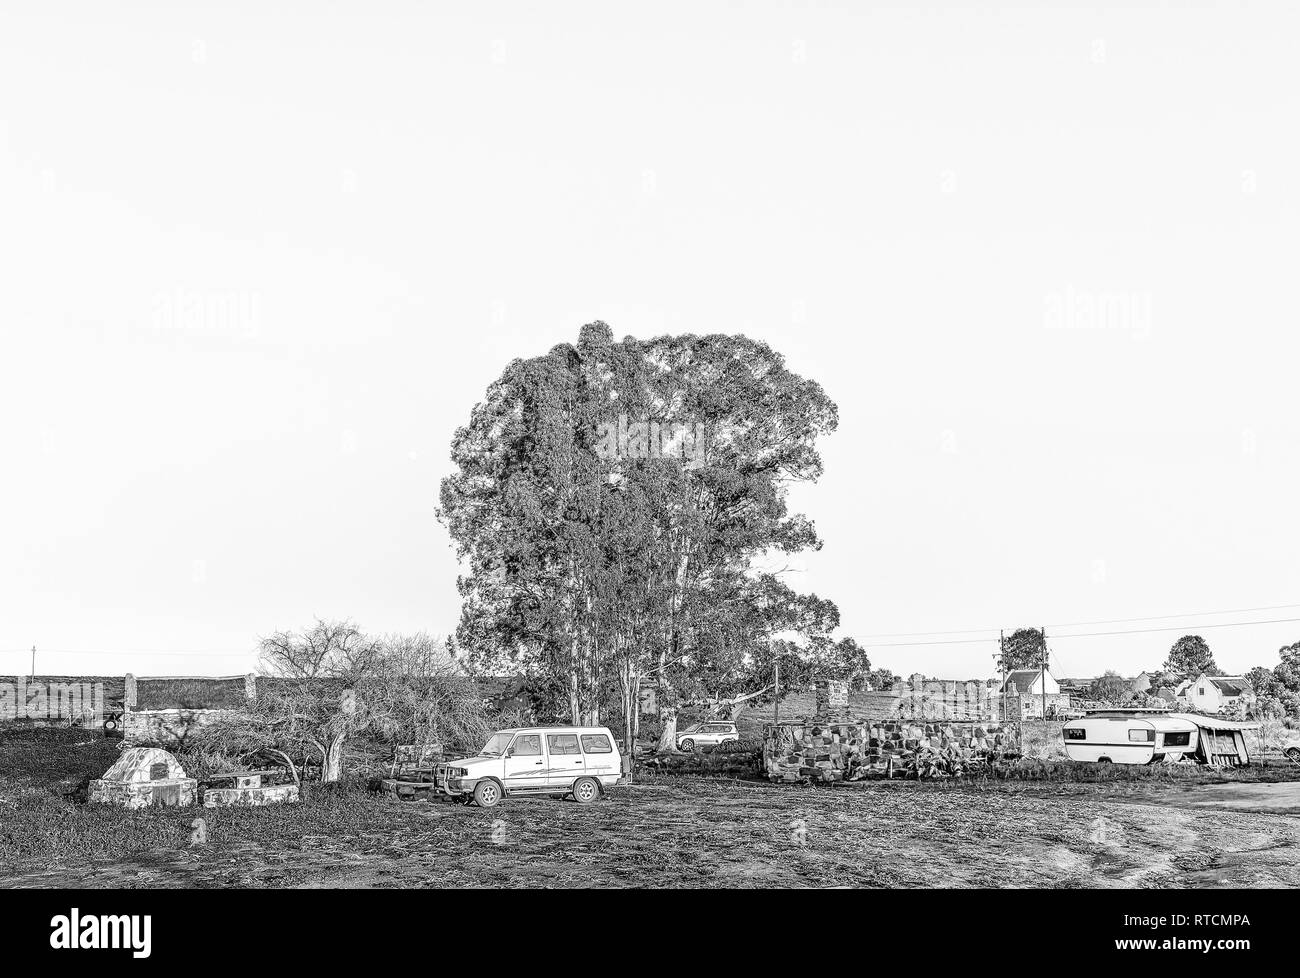 NIEUWOUDTSVILLE, SOUTH AFRICA, AUGUST 29, 2018: The camping area at Matjiesfontein farm in the Northern Cape Province. Vehicles, a caravan and an hist - Stock Image